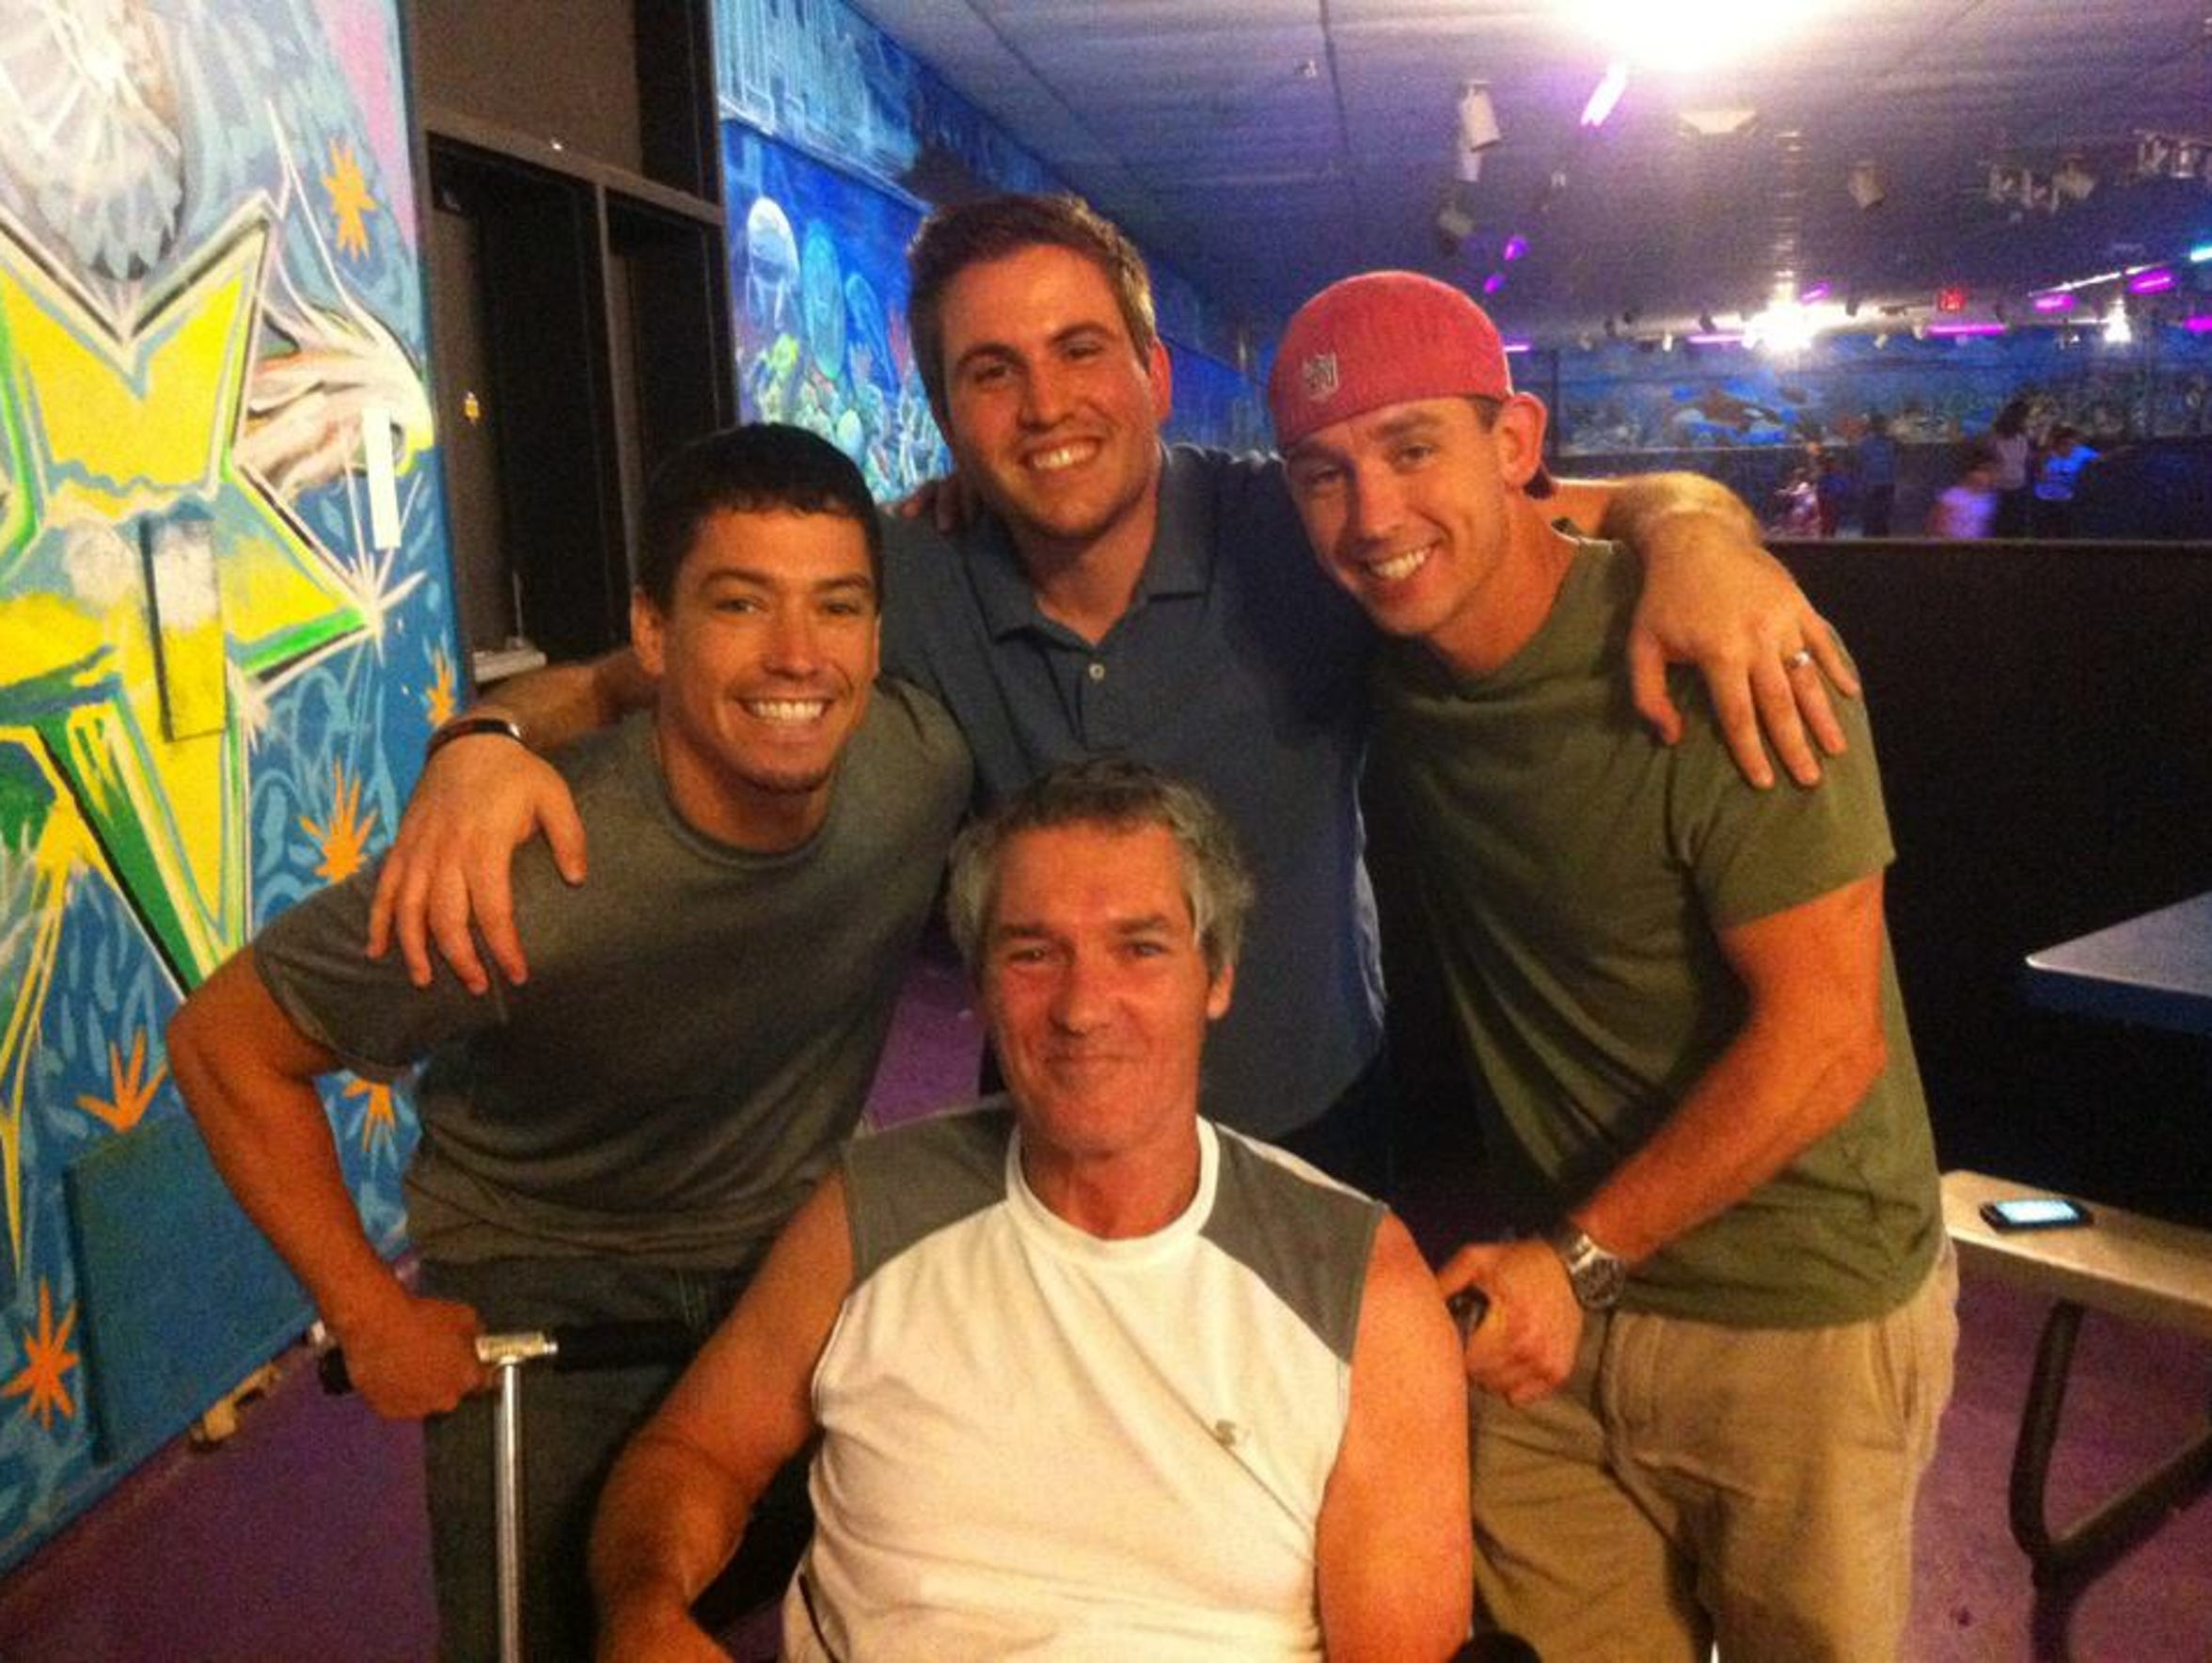 Christopher York, seated center, with his two sons and son-in-law at a skating rink. The photo was taken before he was hit by a car and had his leg amputated.